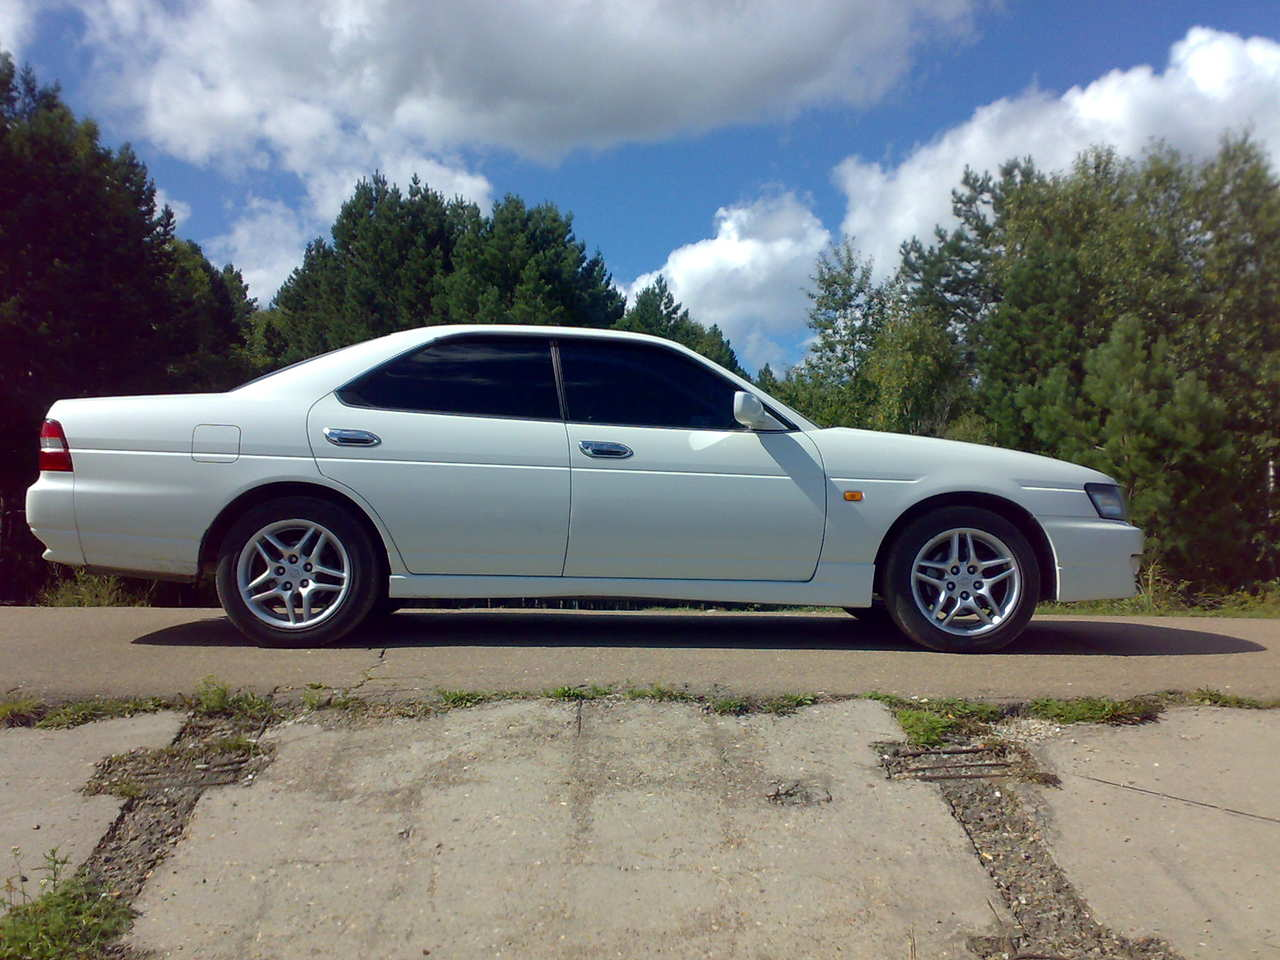 2001 Nissan Laurel #20